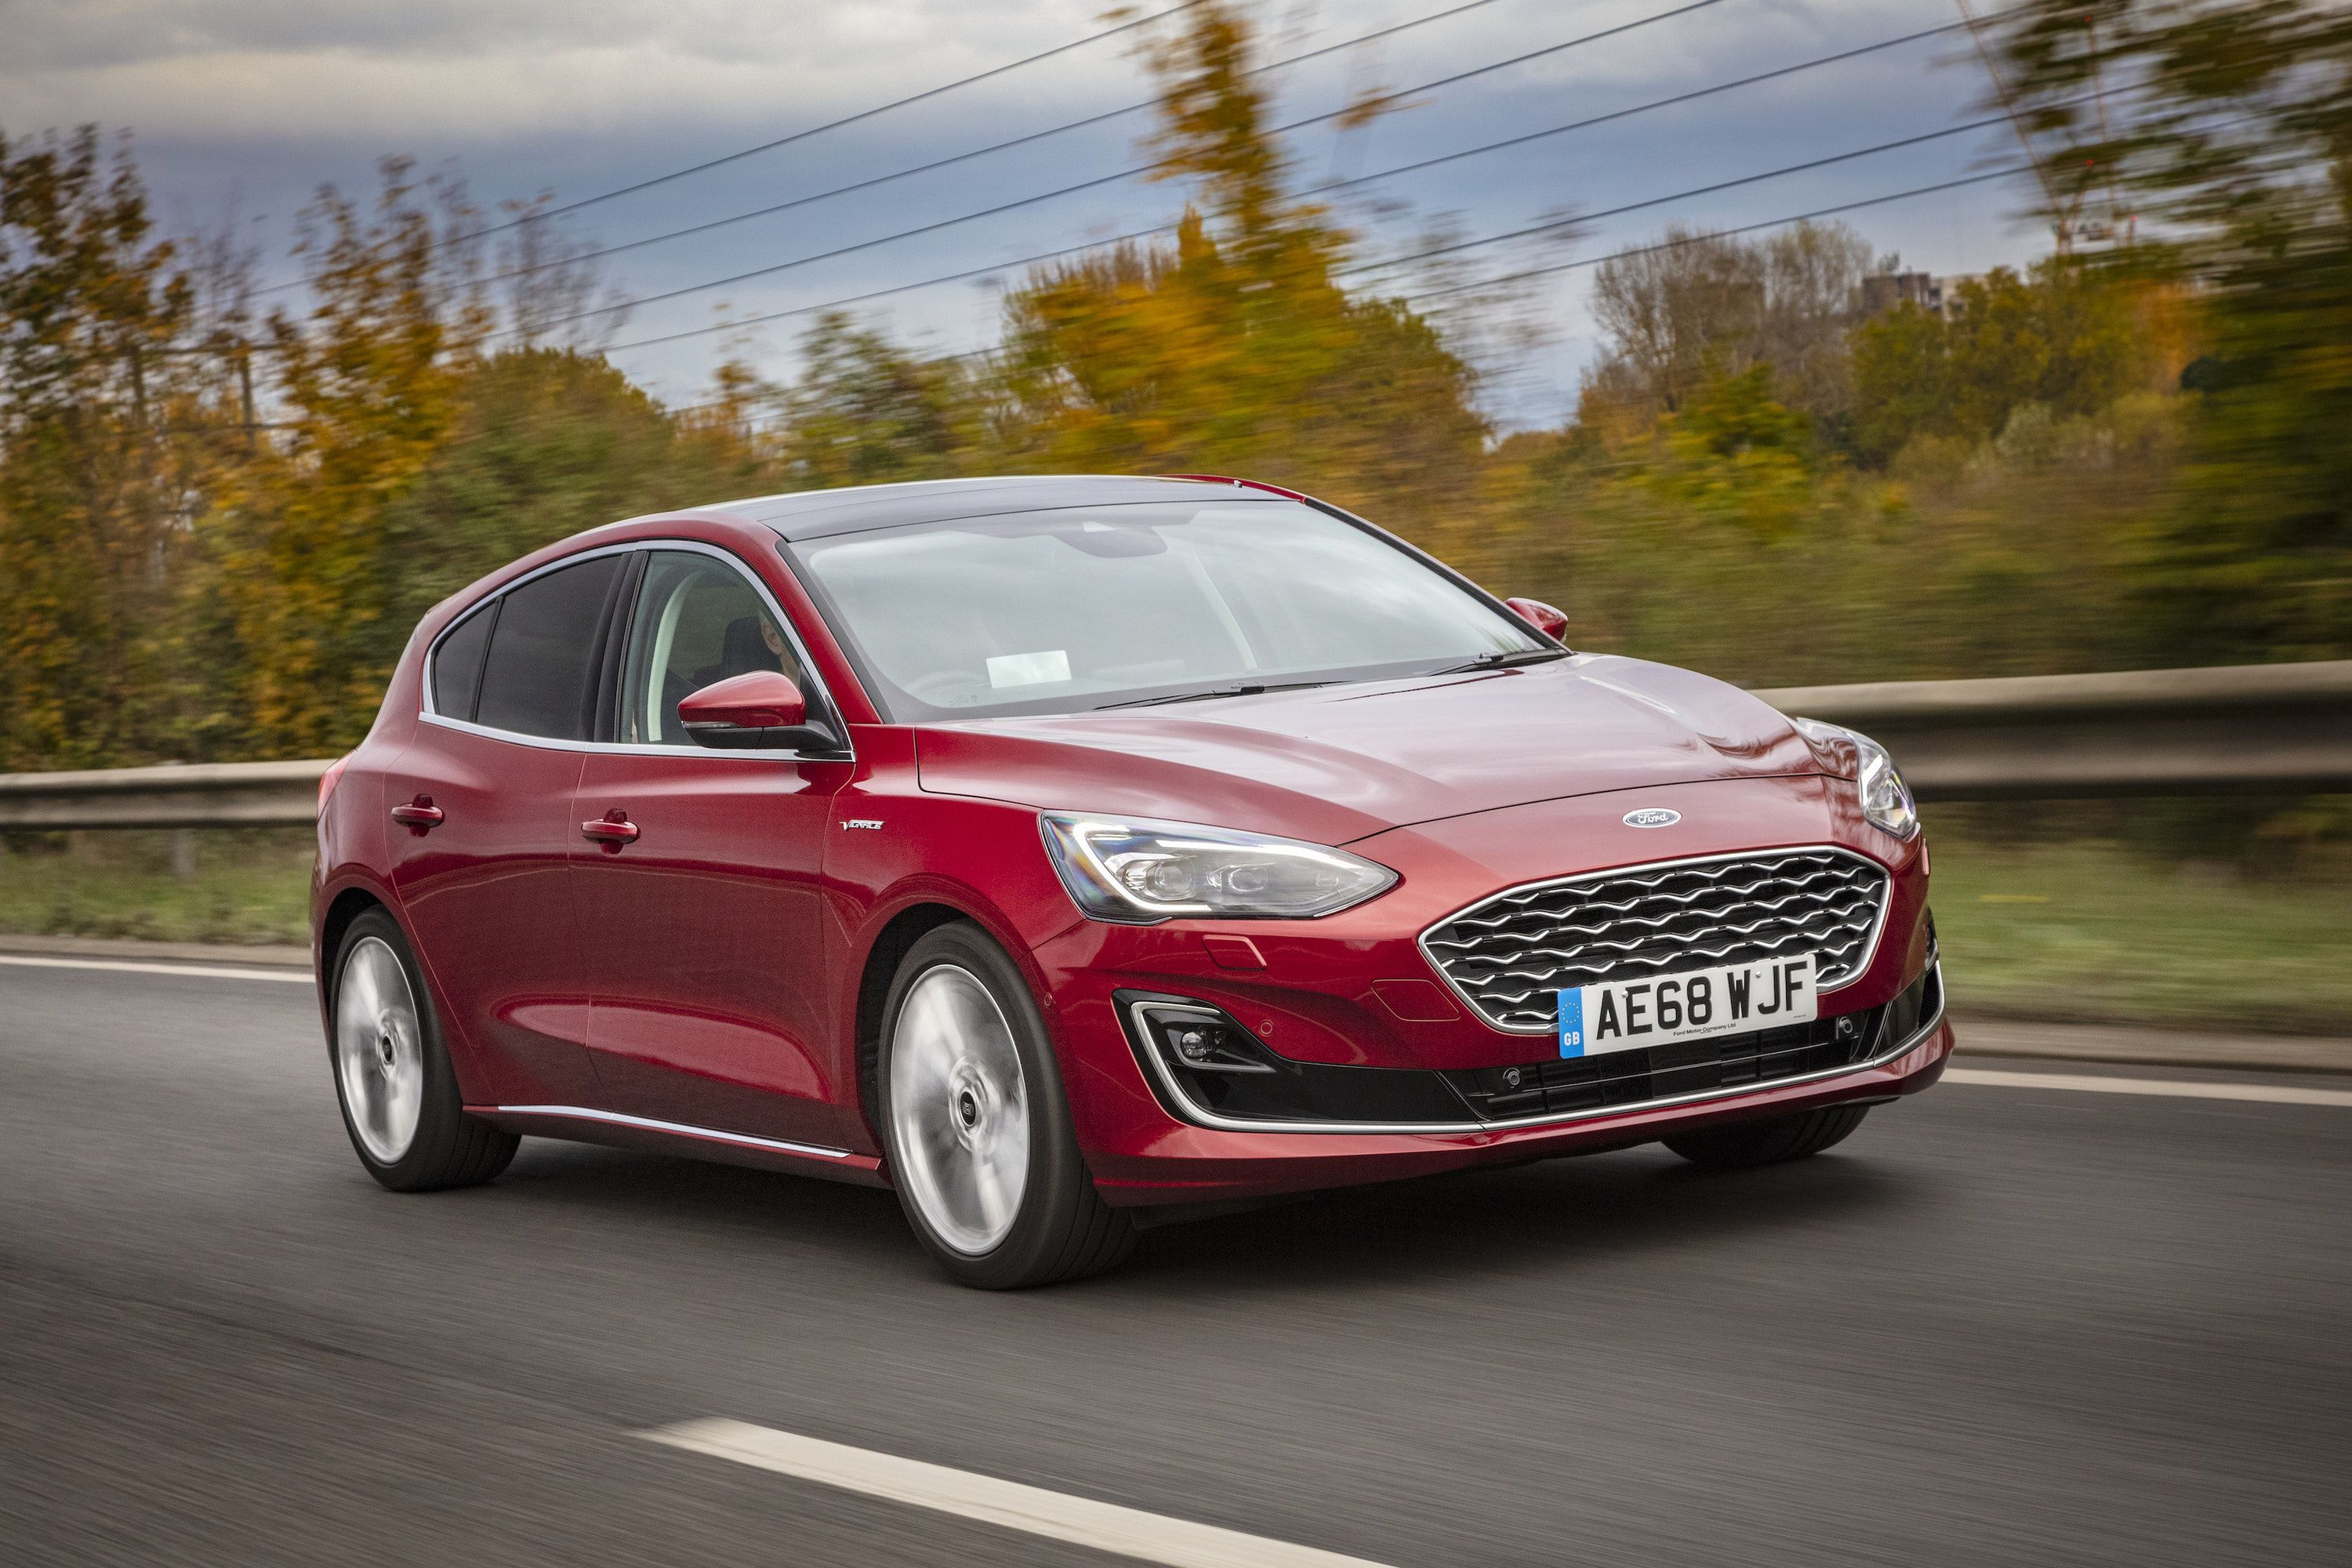 Ford Focus Vignale driving on a road